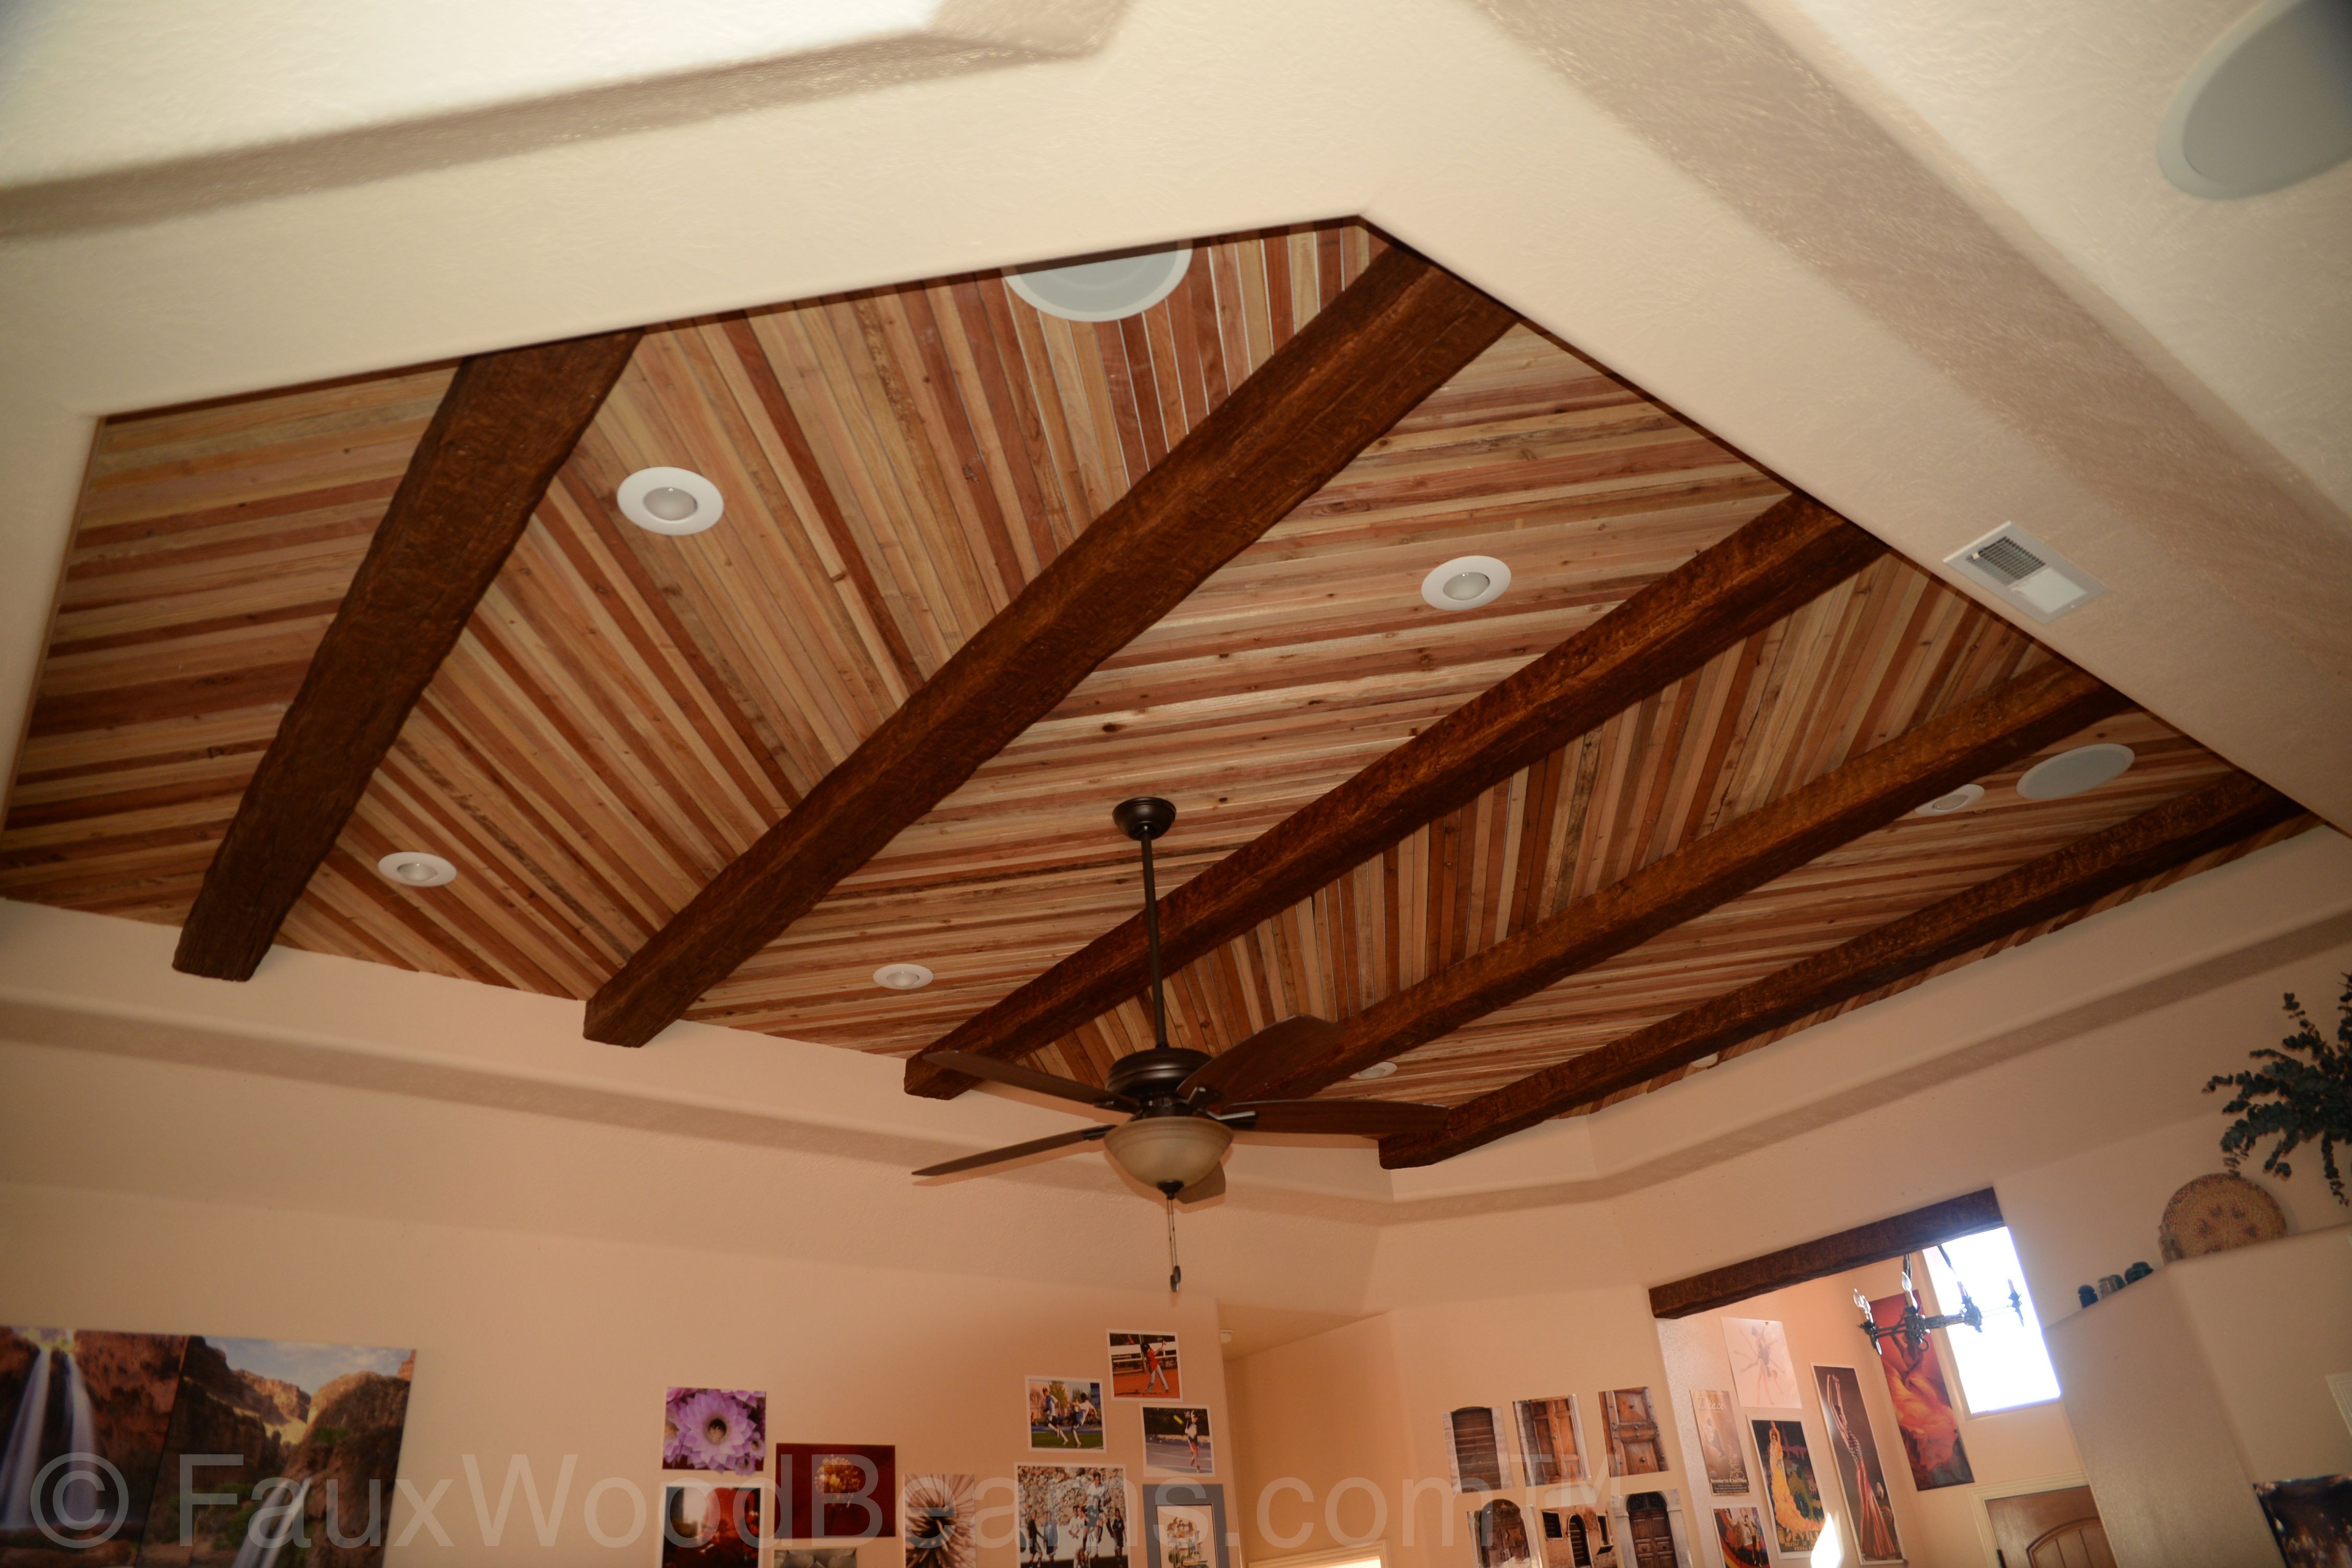 It S Standard Operating Procedure To Paint Your Walls A Color While Keeping The Ceiling Whit Ceiling Alternatives Drop Ceiling Alternatives Metal Ceiling Tiles